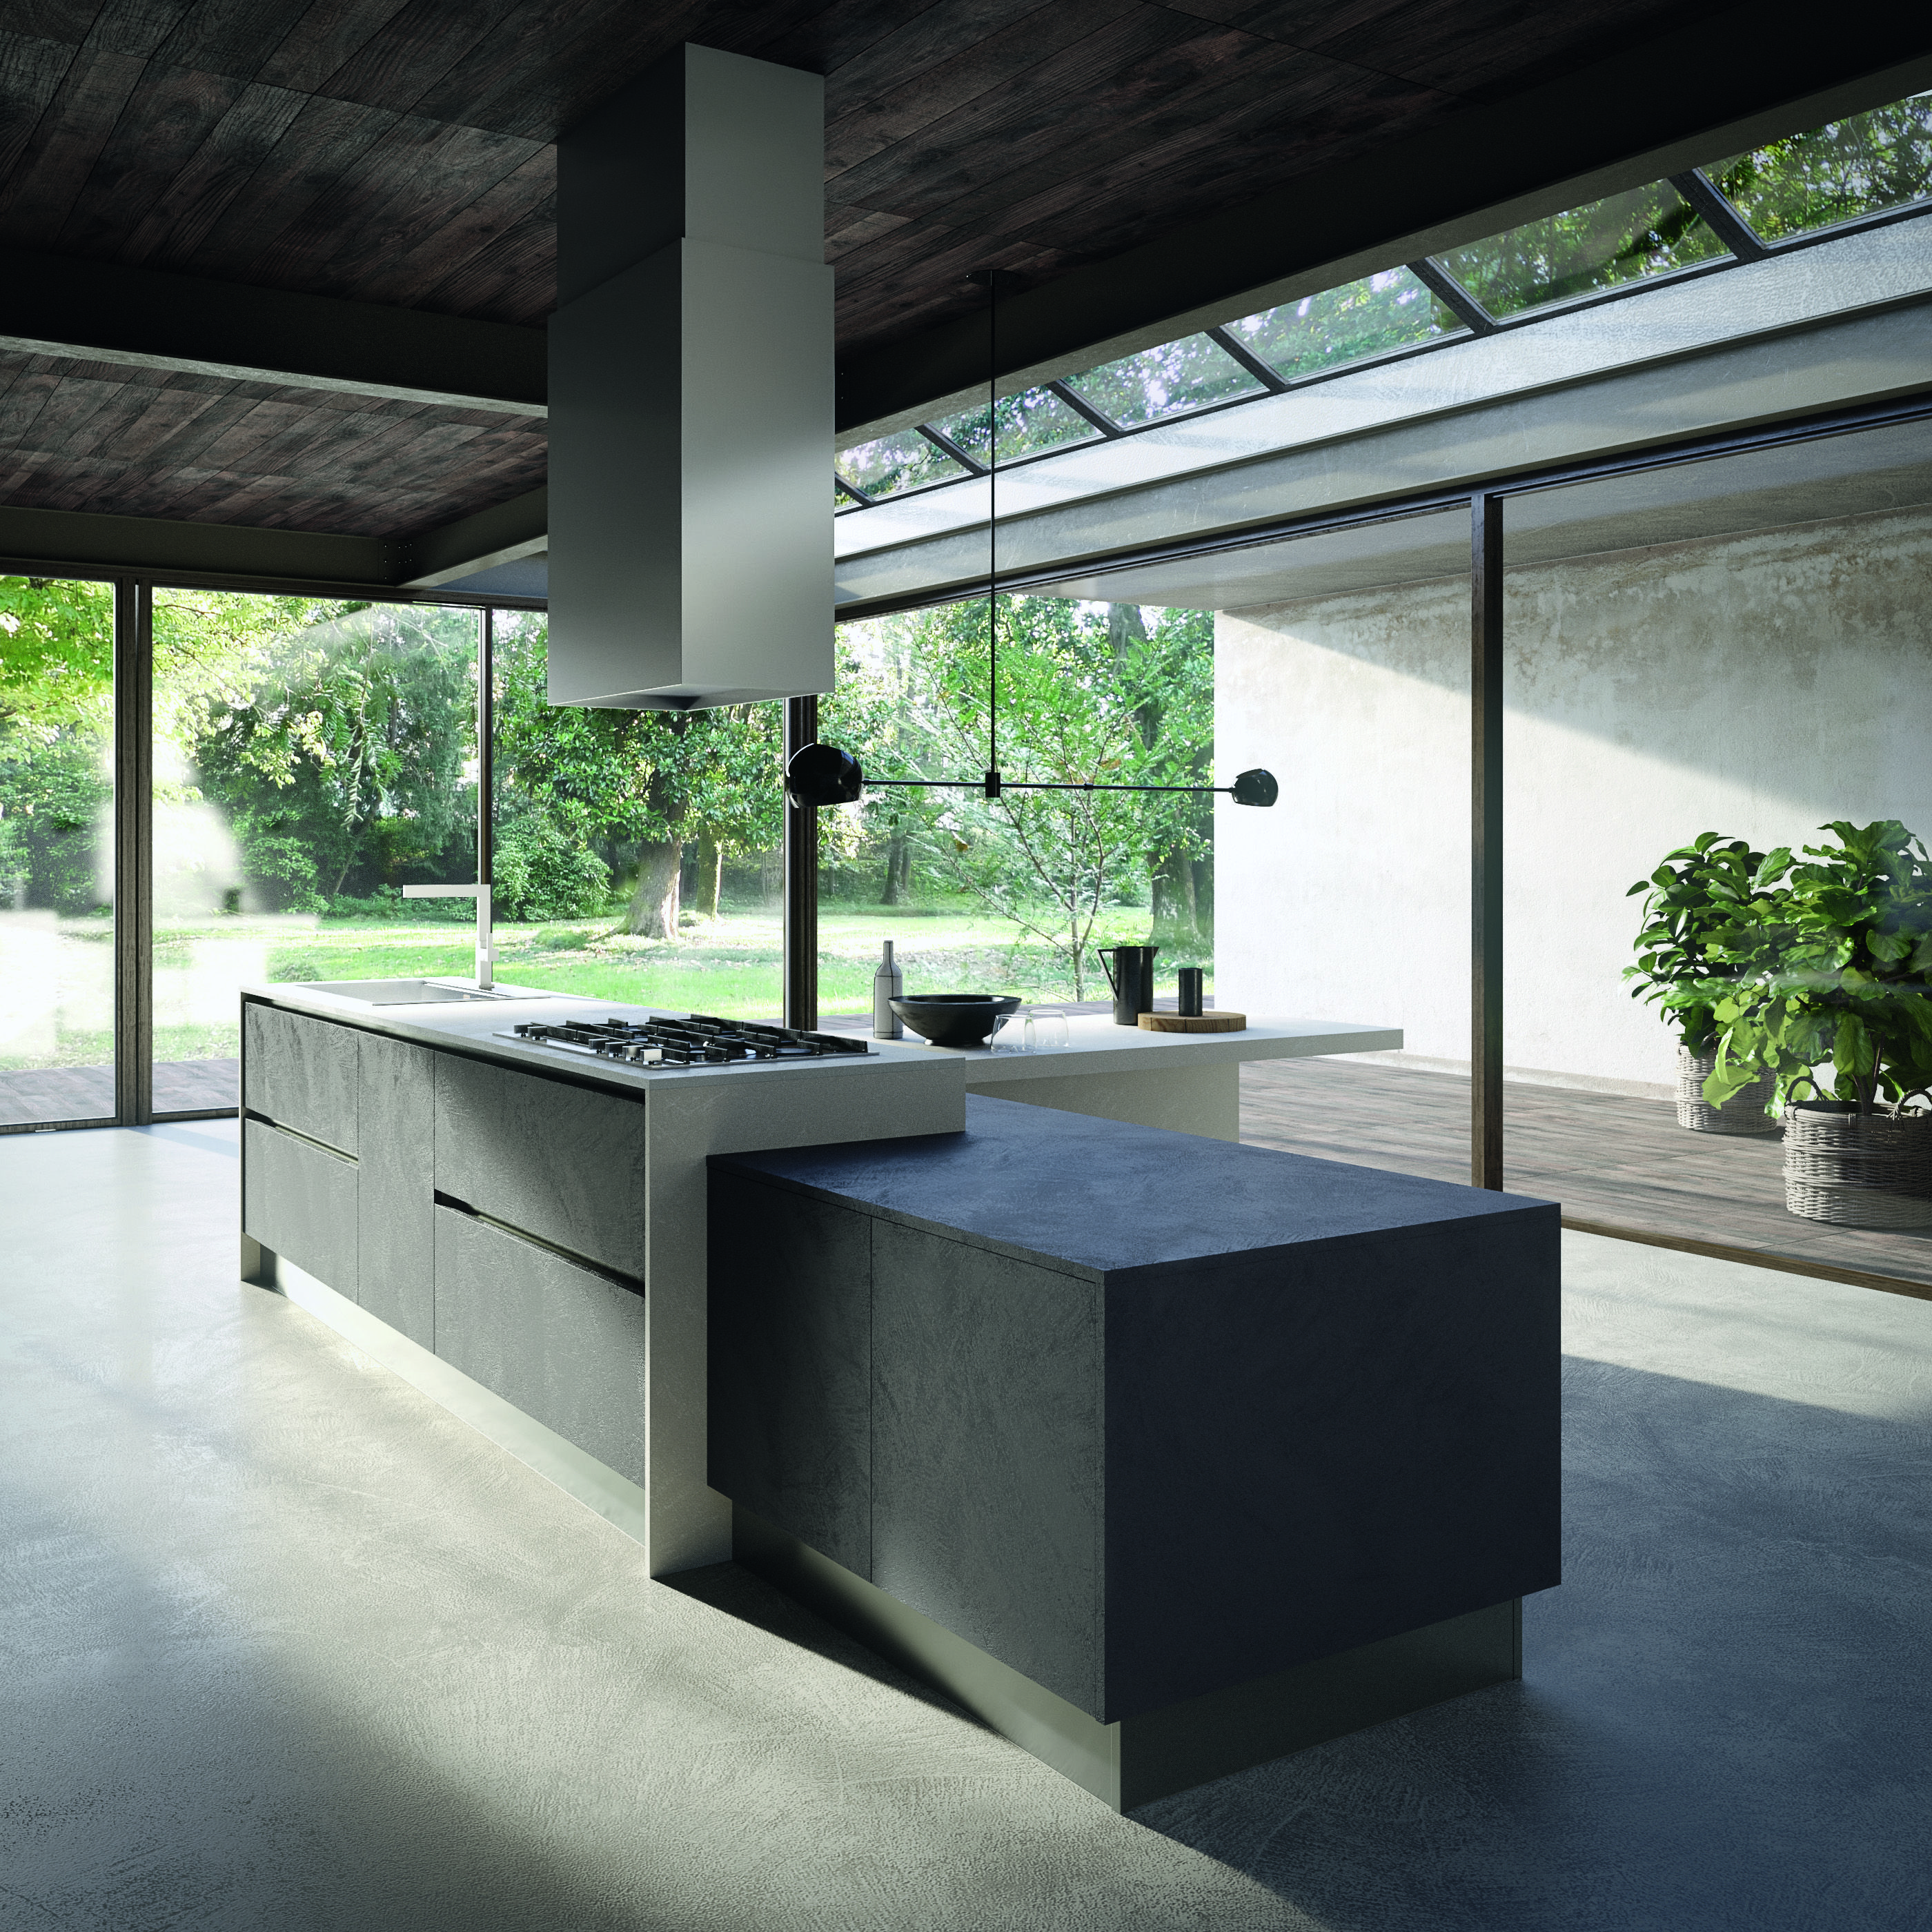 Eko gloss lacquers and woods idee per la cucina for Cucine moderne scure